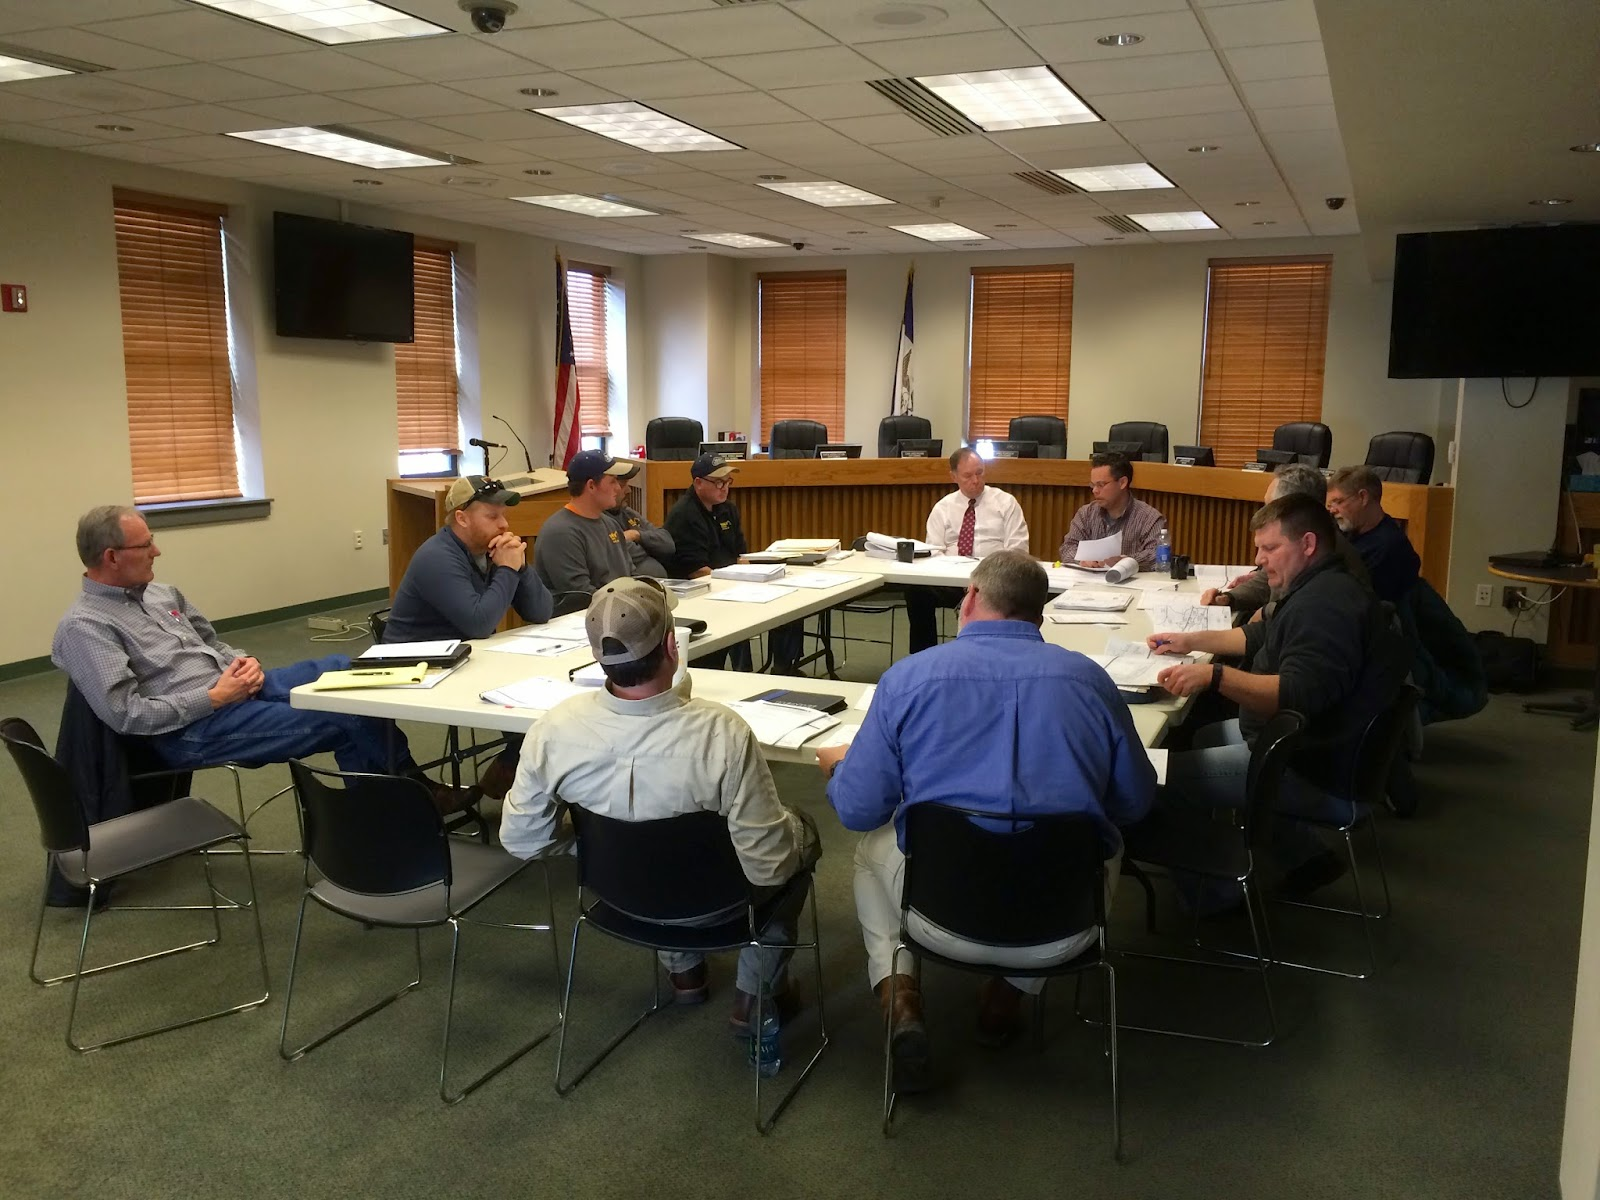 Expansion Blvd Sw Project Kicks Off With Pre Construction Meeting